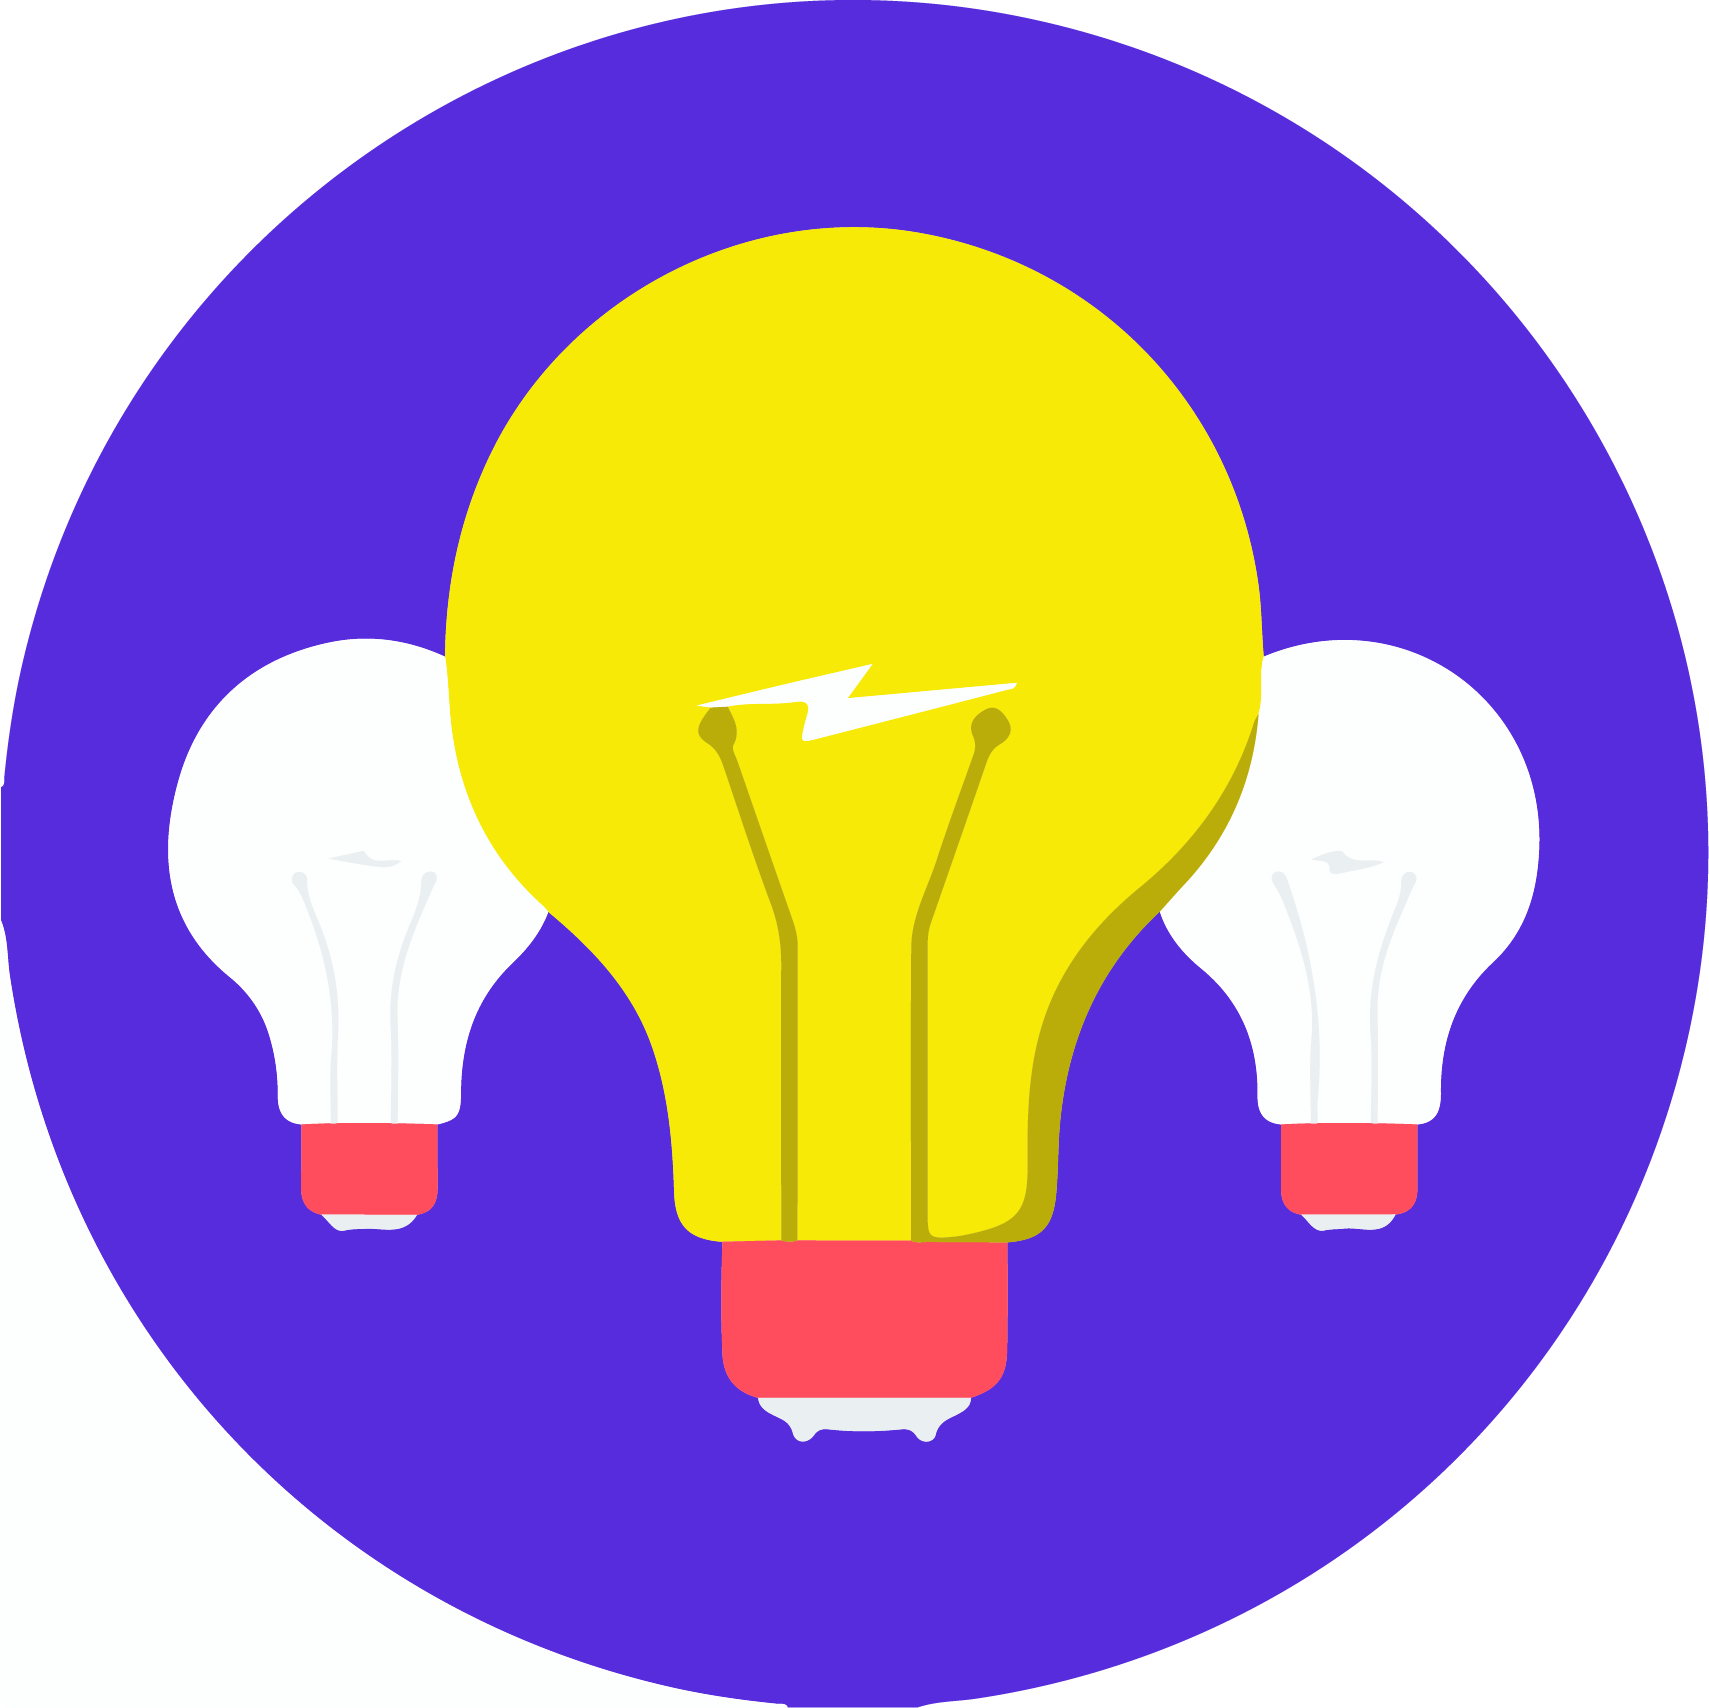 lightbulbs logo.